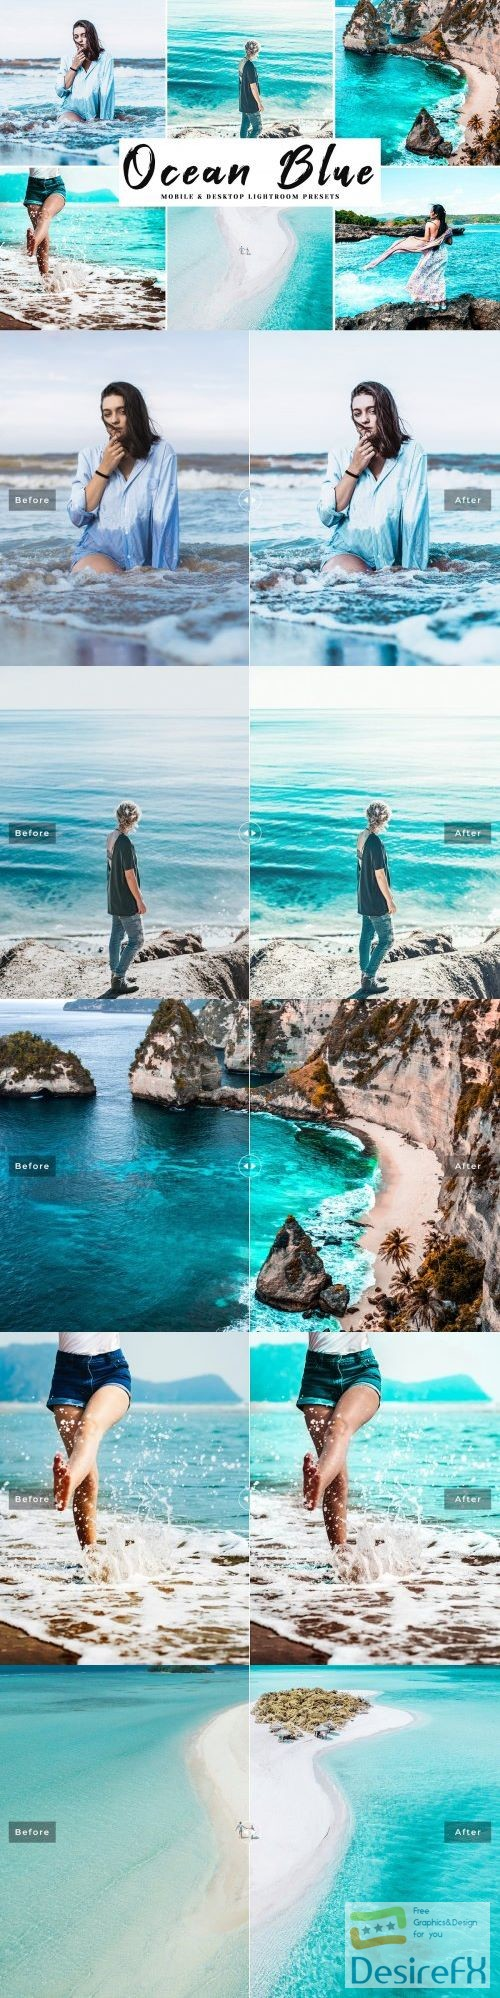 photoshop - Ocean Blue Lightroom Presets Pack 4026118